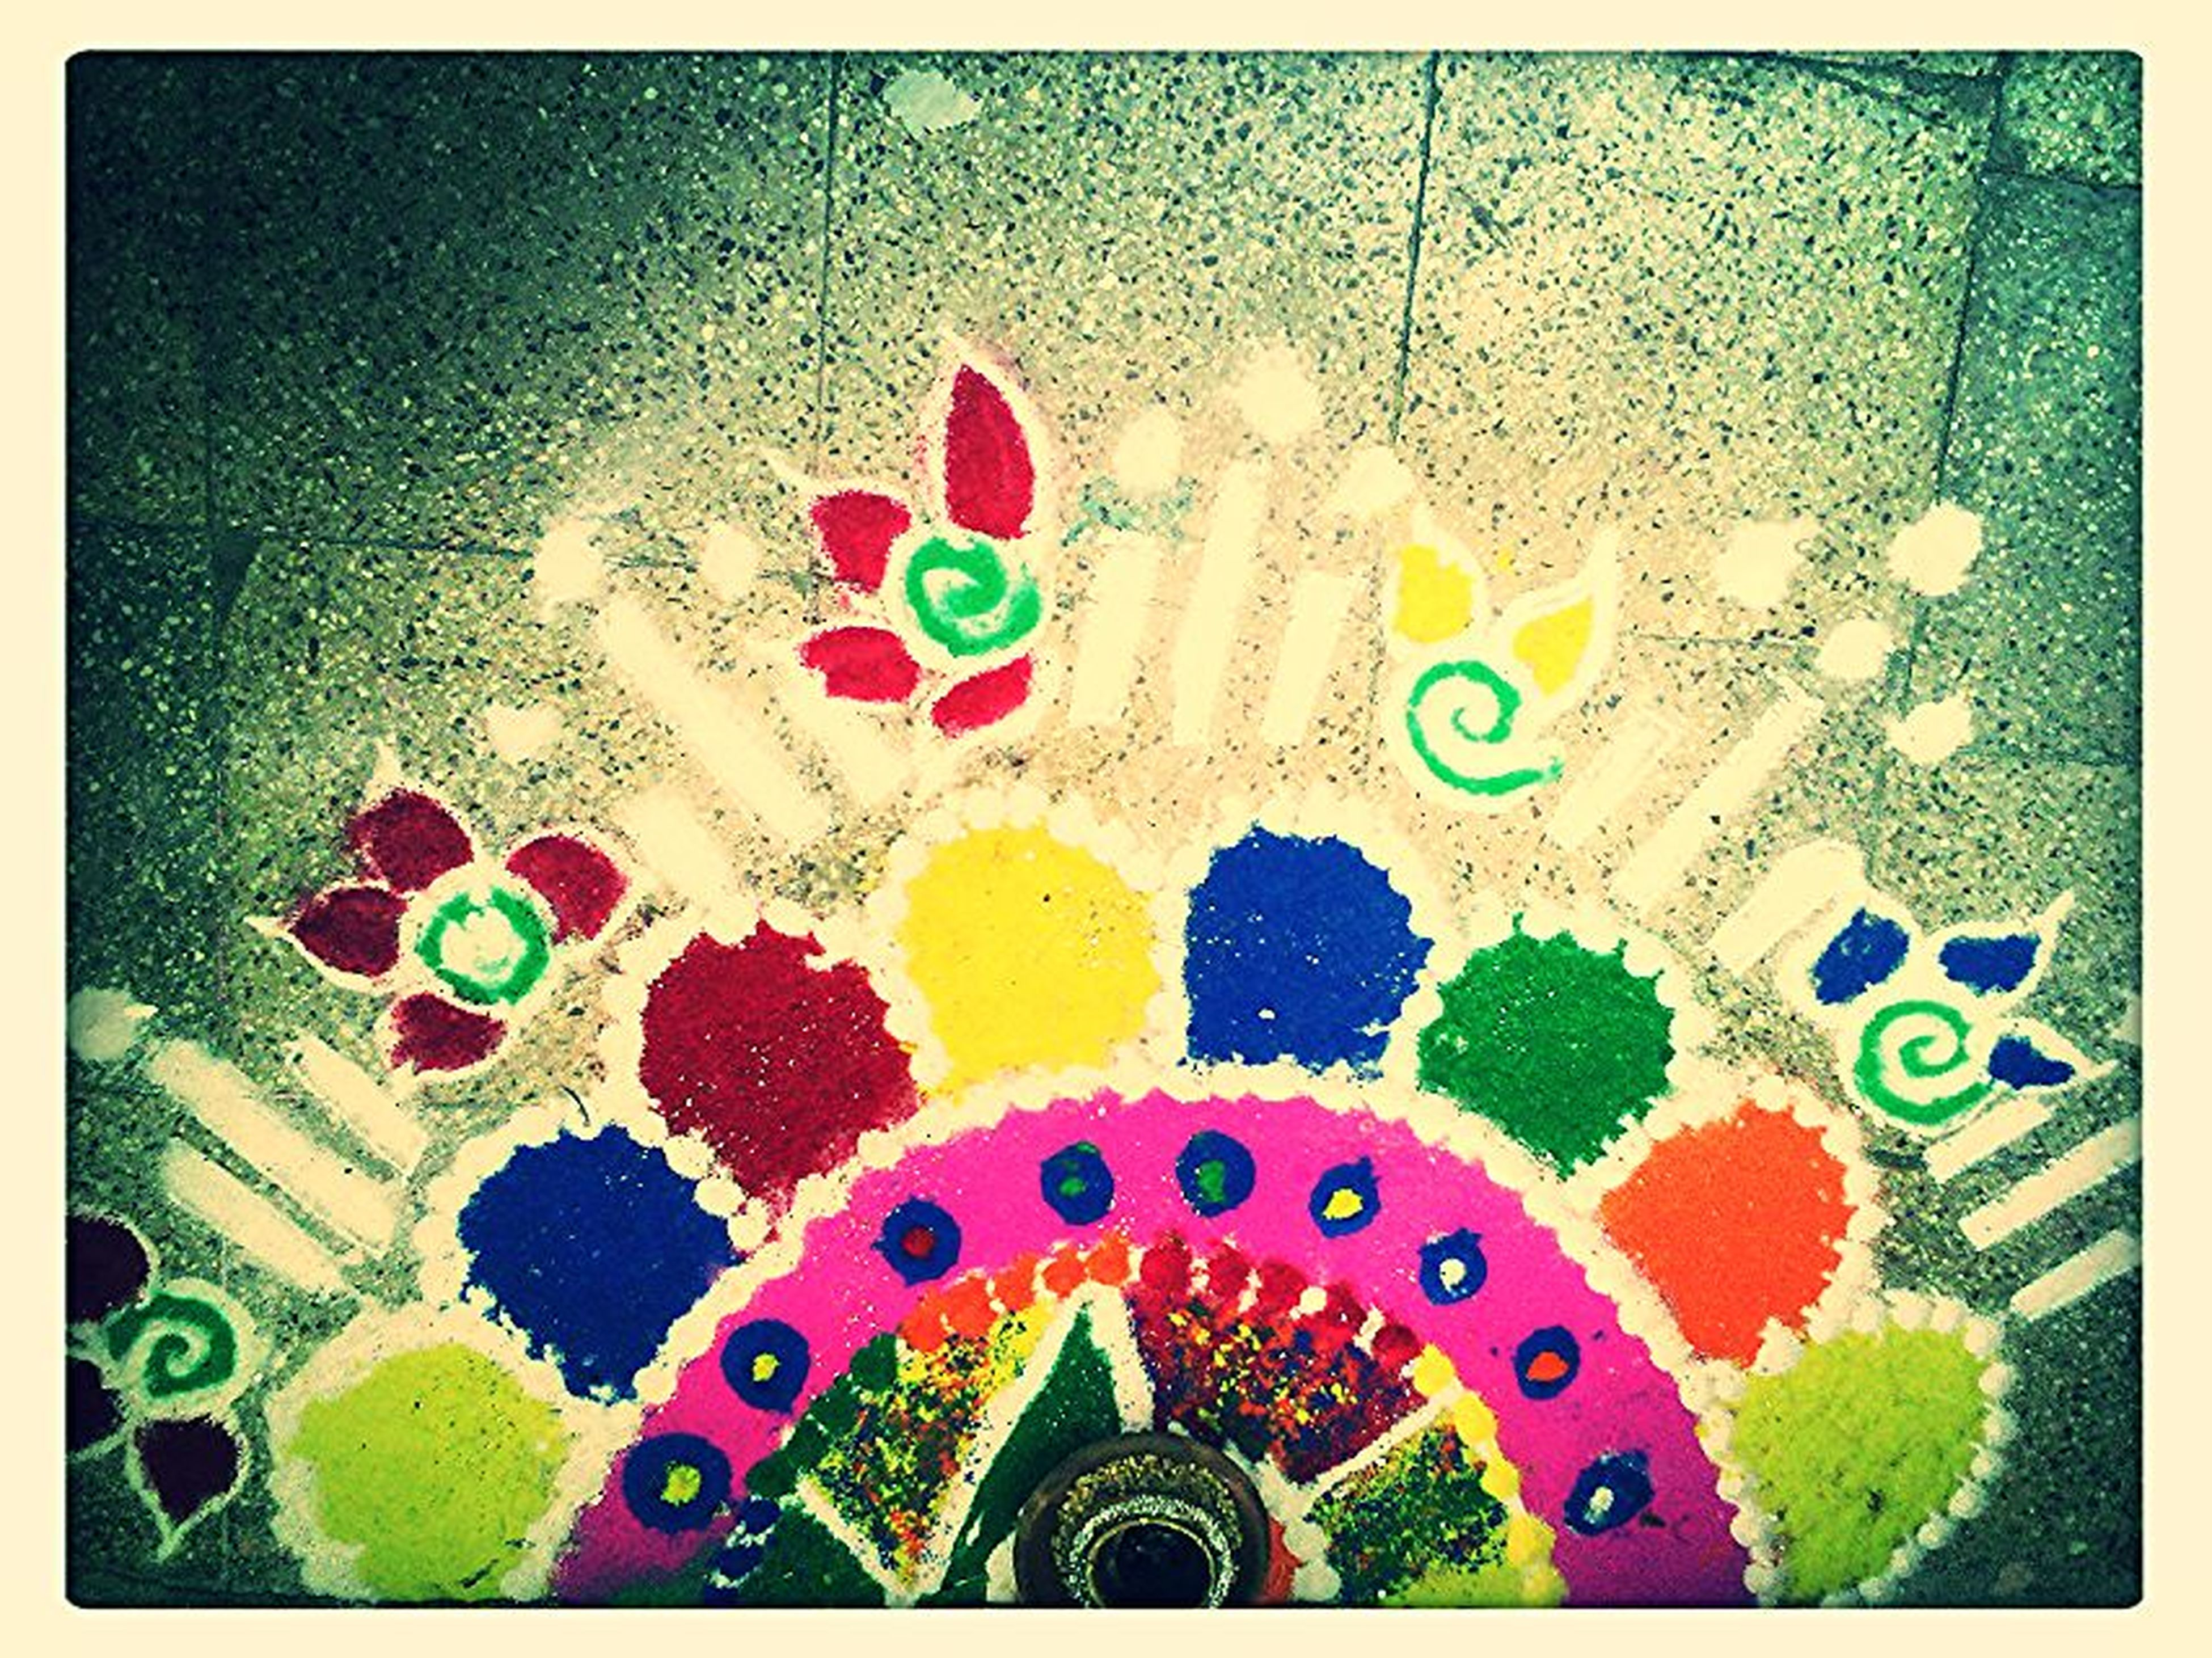 multi colored, indoors, transfer print, art and craft, decoration, art, creativity, design, pattern, auto post production filter, floral pattern, colorful, celebration, high angle view, ornate, text, variation, ceiling, no people, tradition